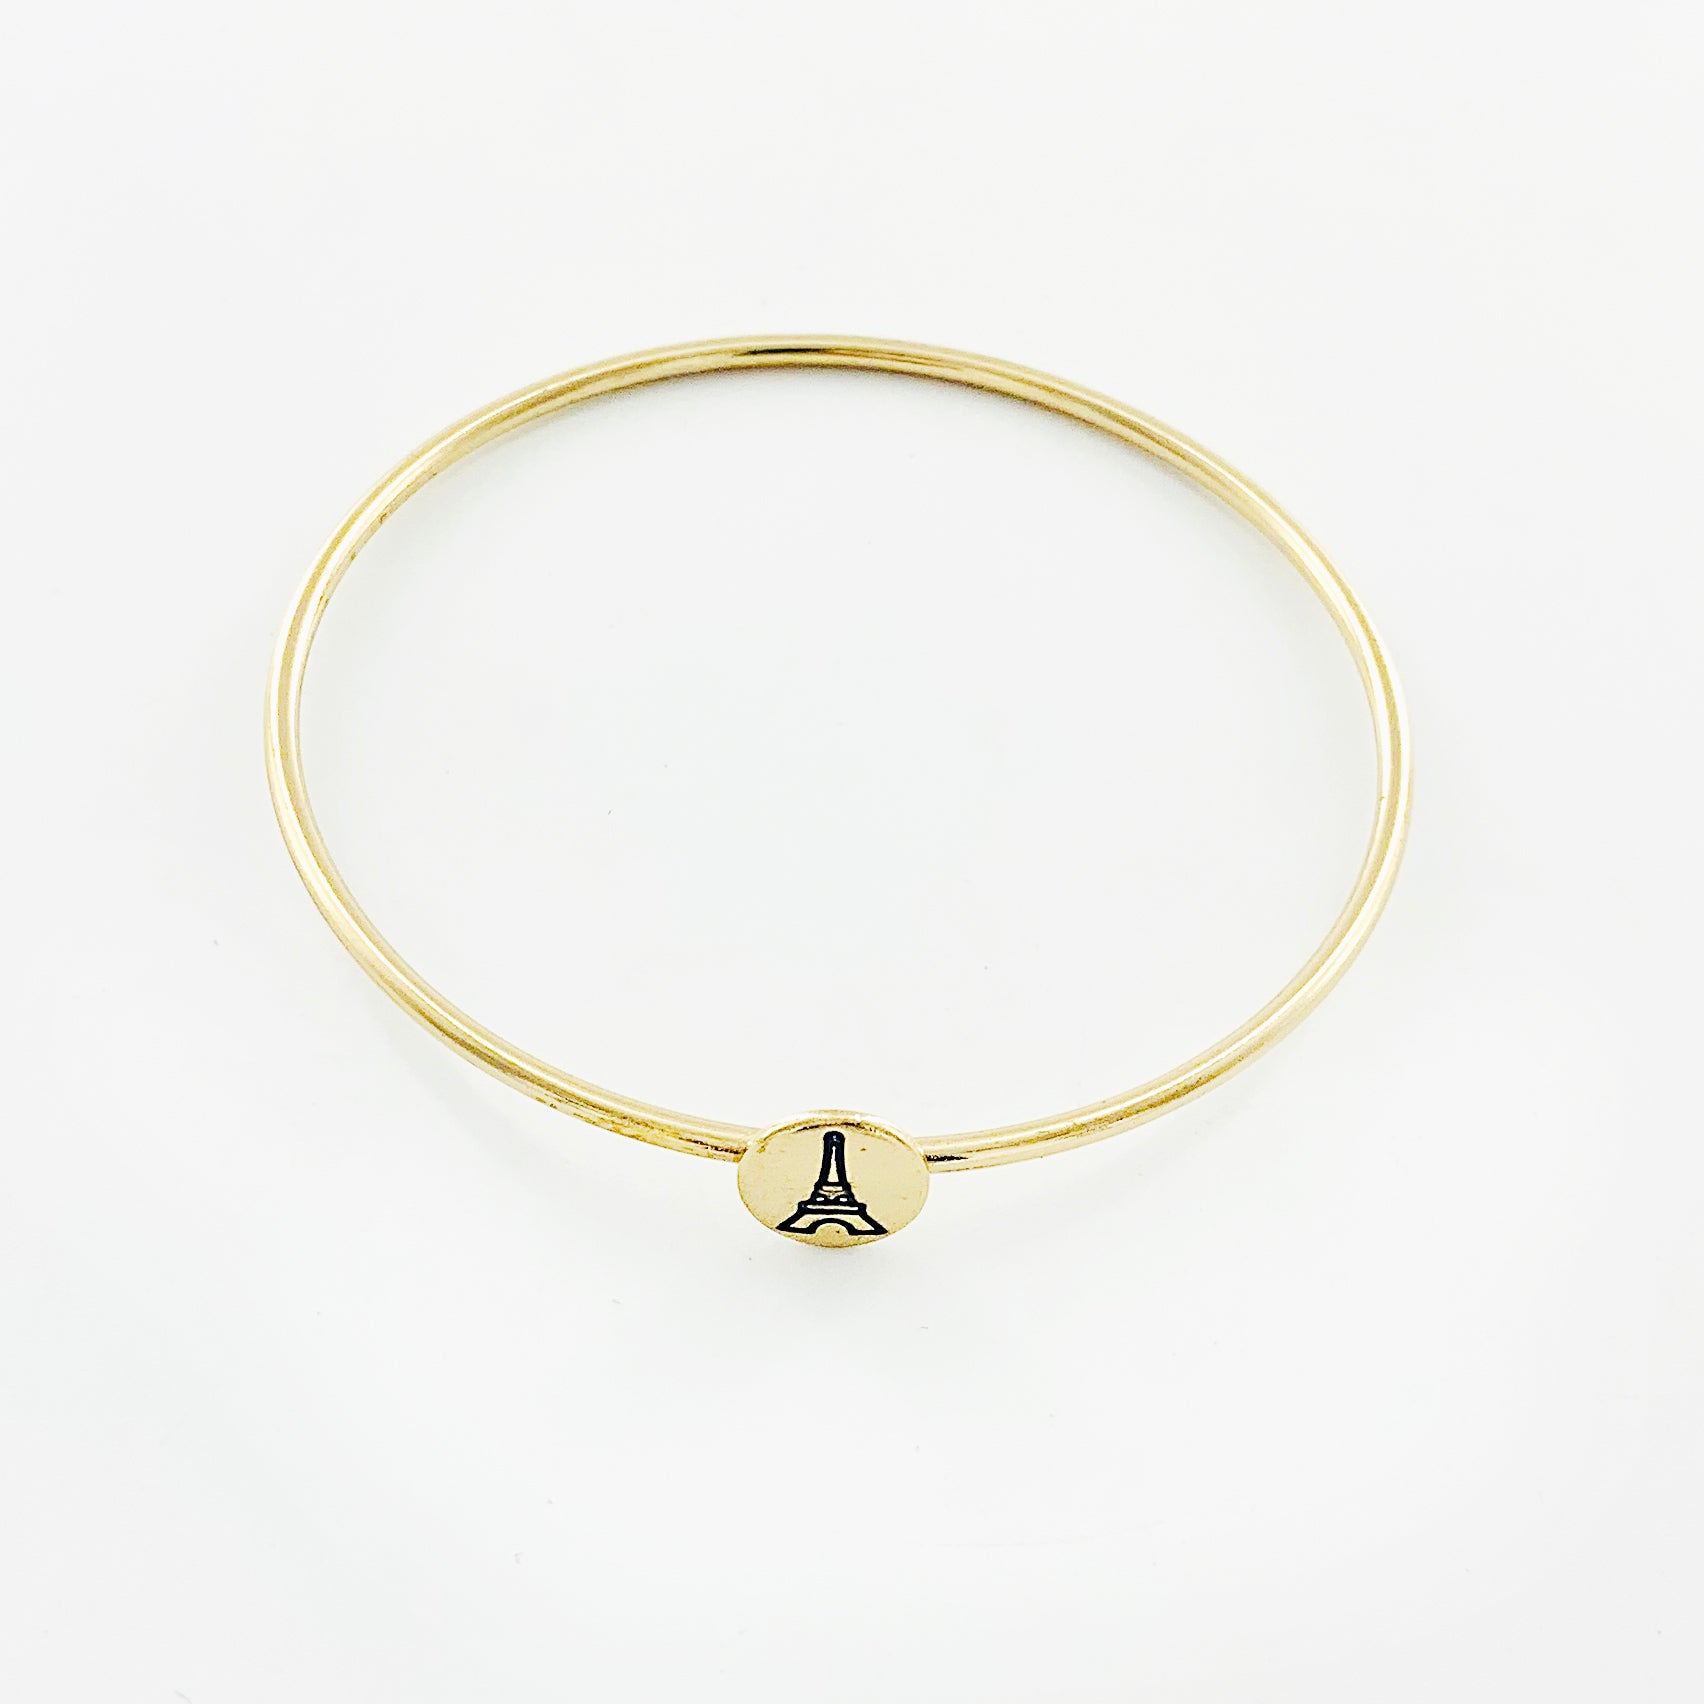 Thin gold bangle with engraved Eiffel Tower disc